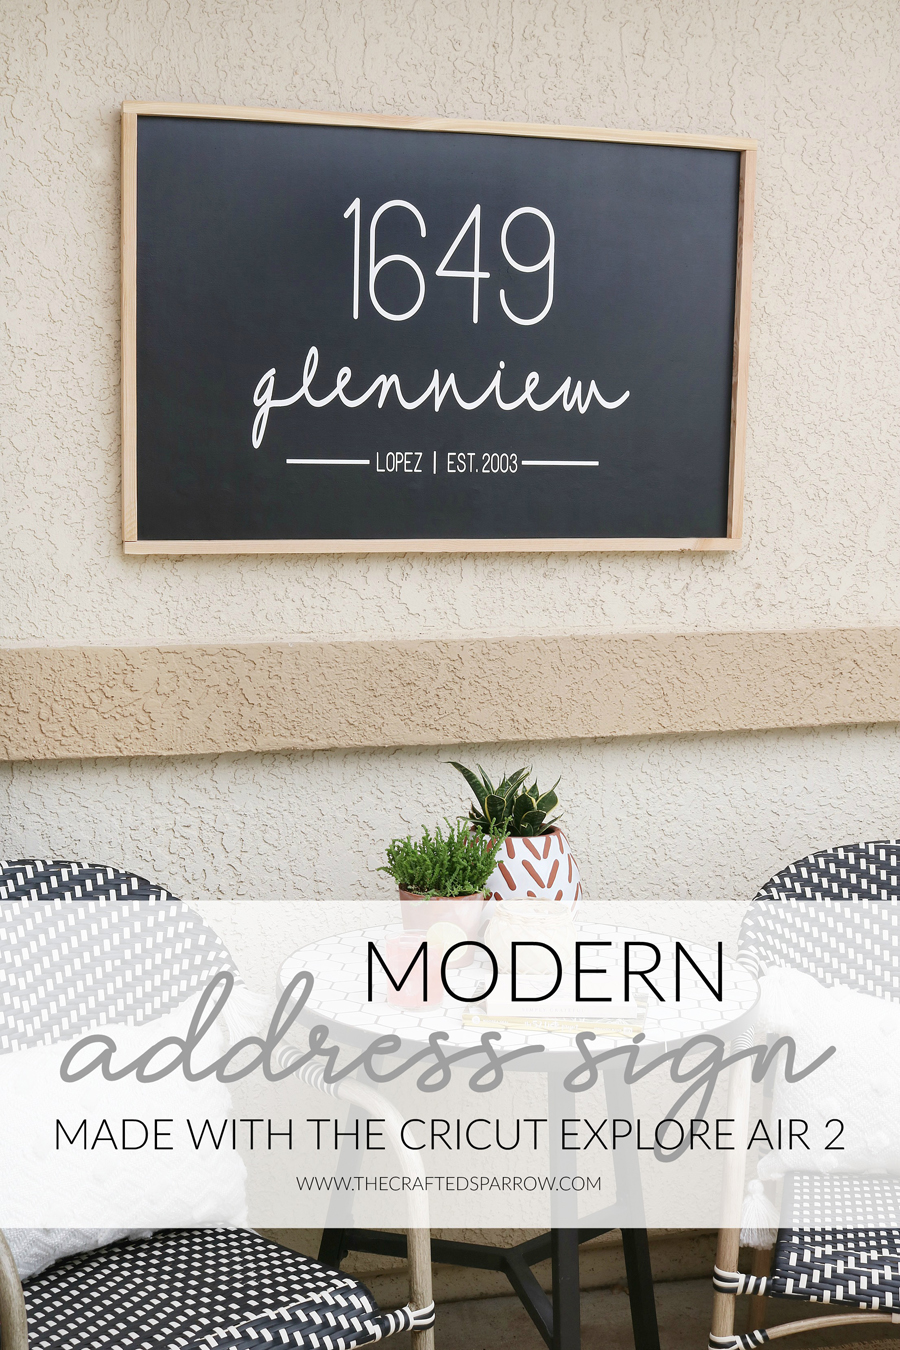 Modern Address Sign Made with The Cricut Explore Air 2